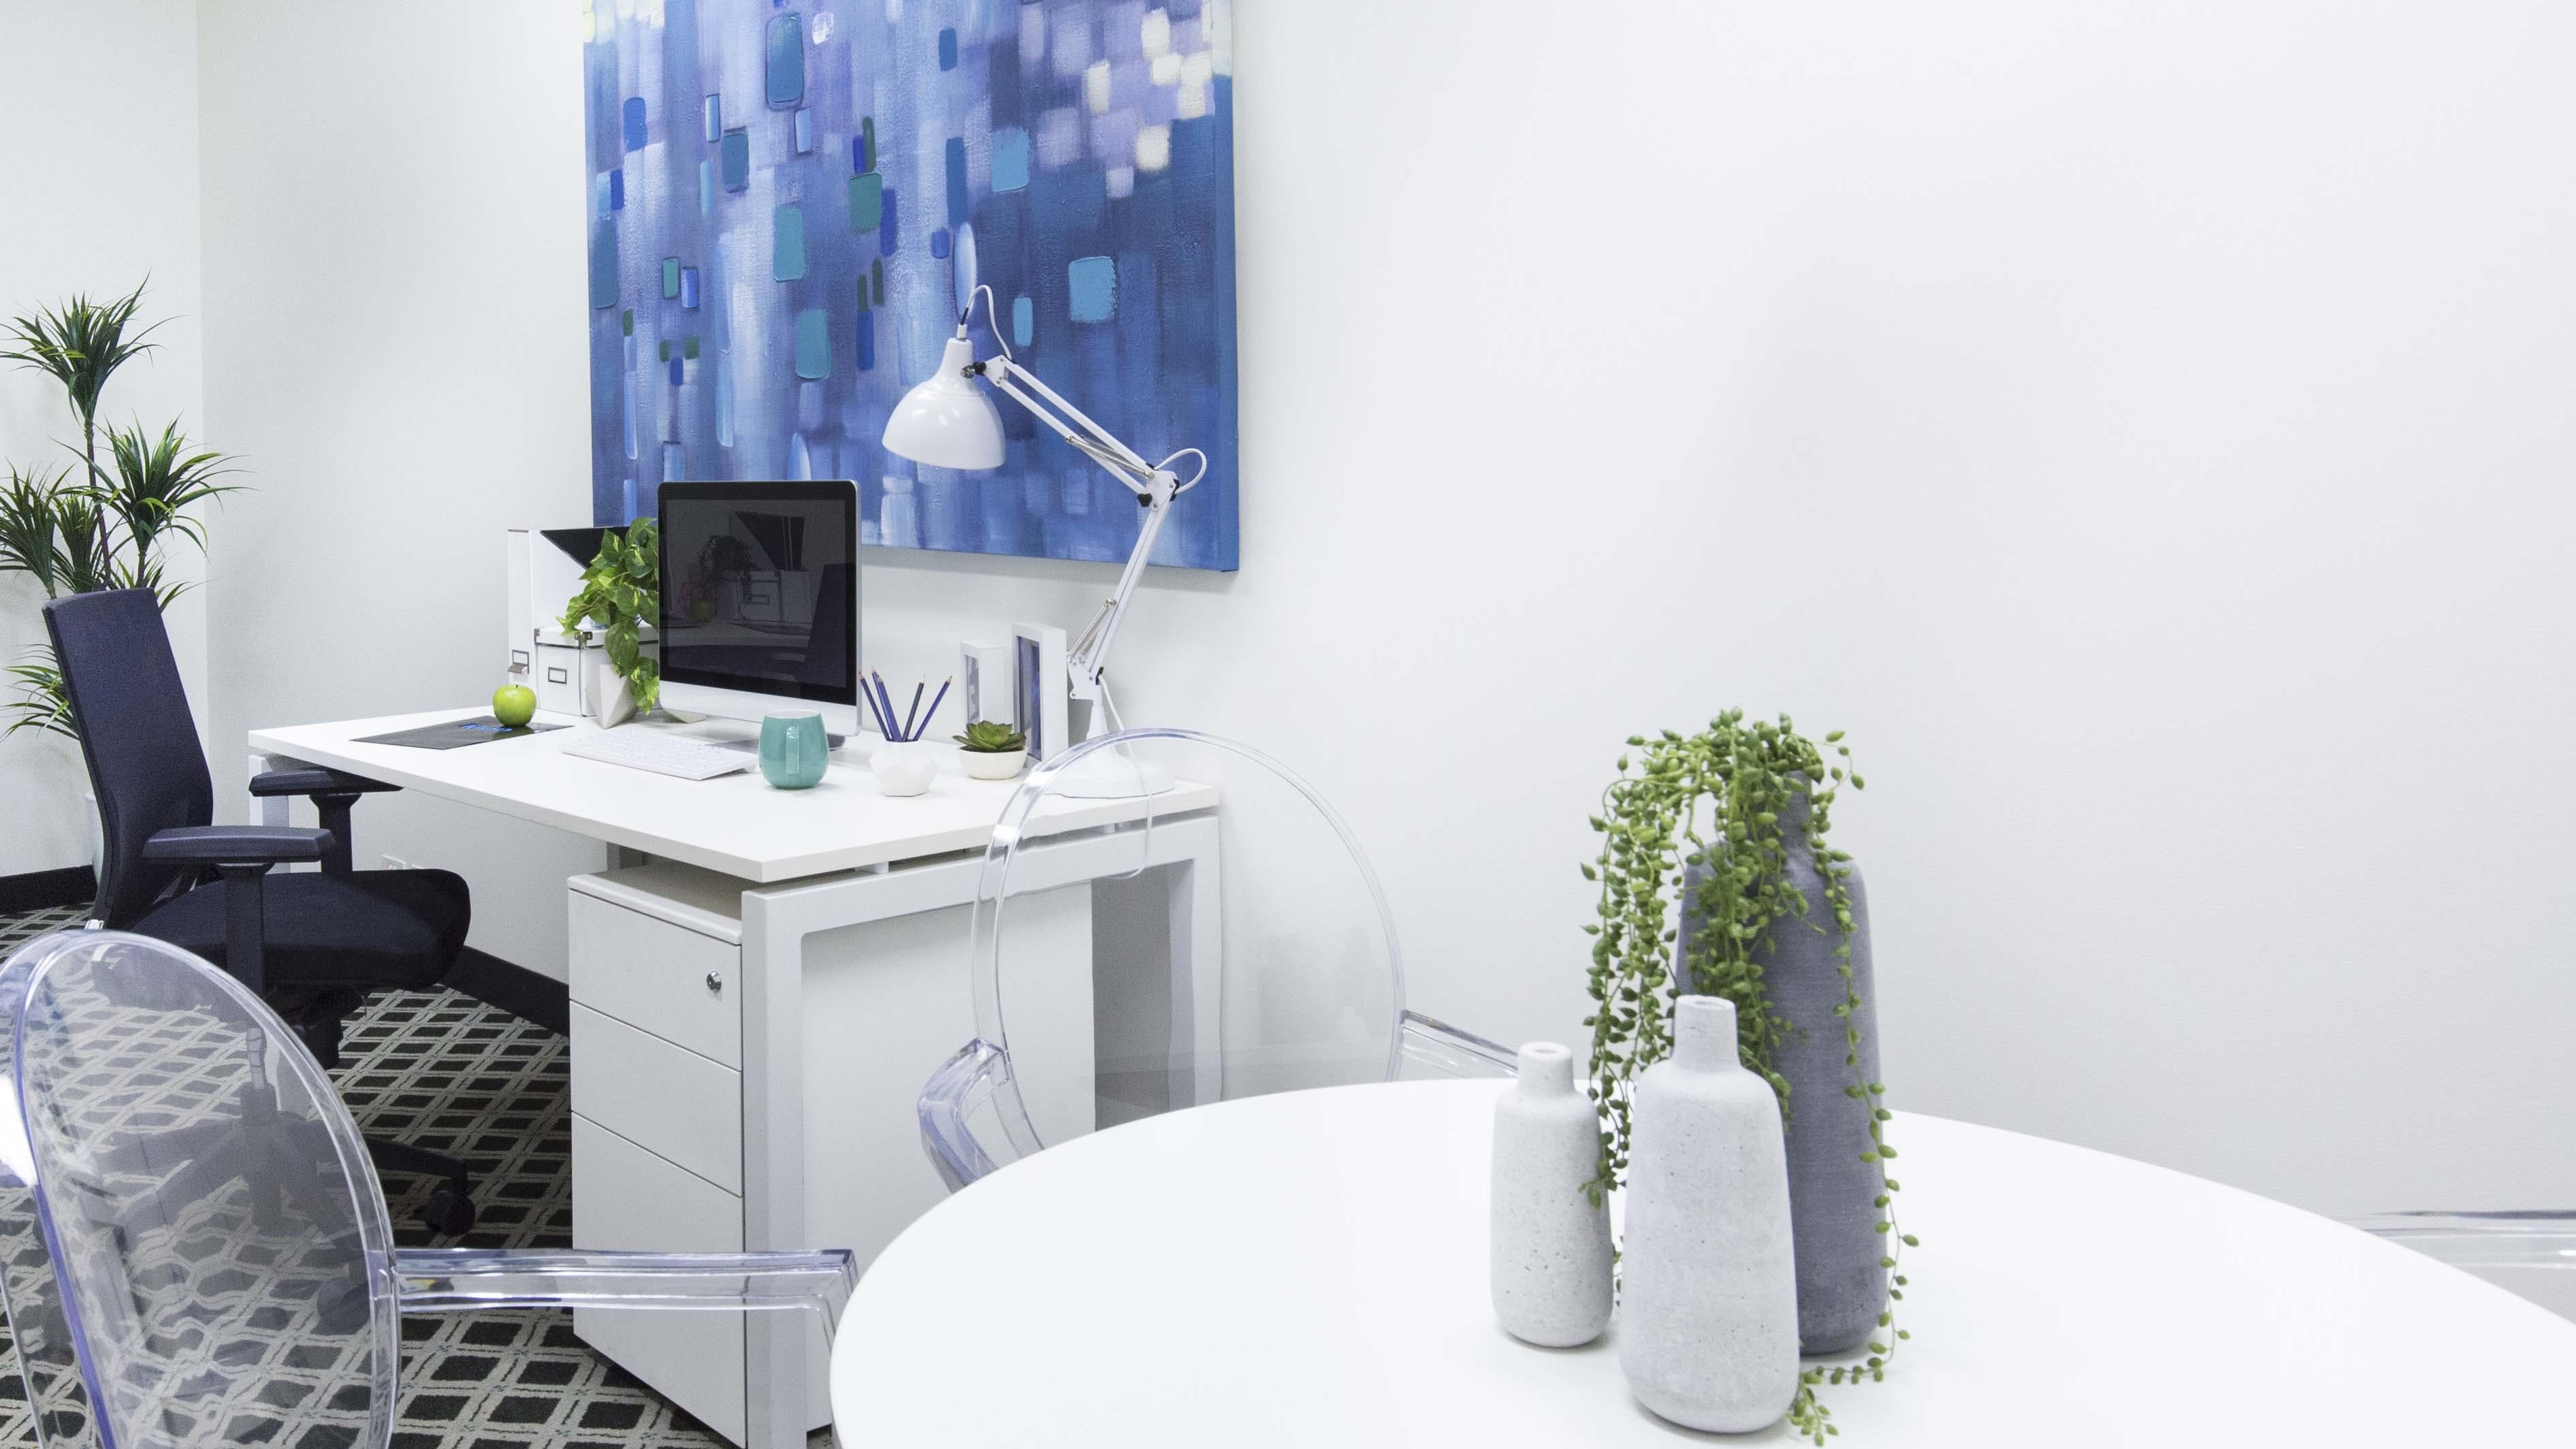 Suite 219, private office at St Kilda Rd Towers, image 1